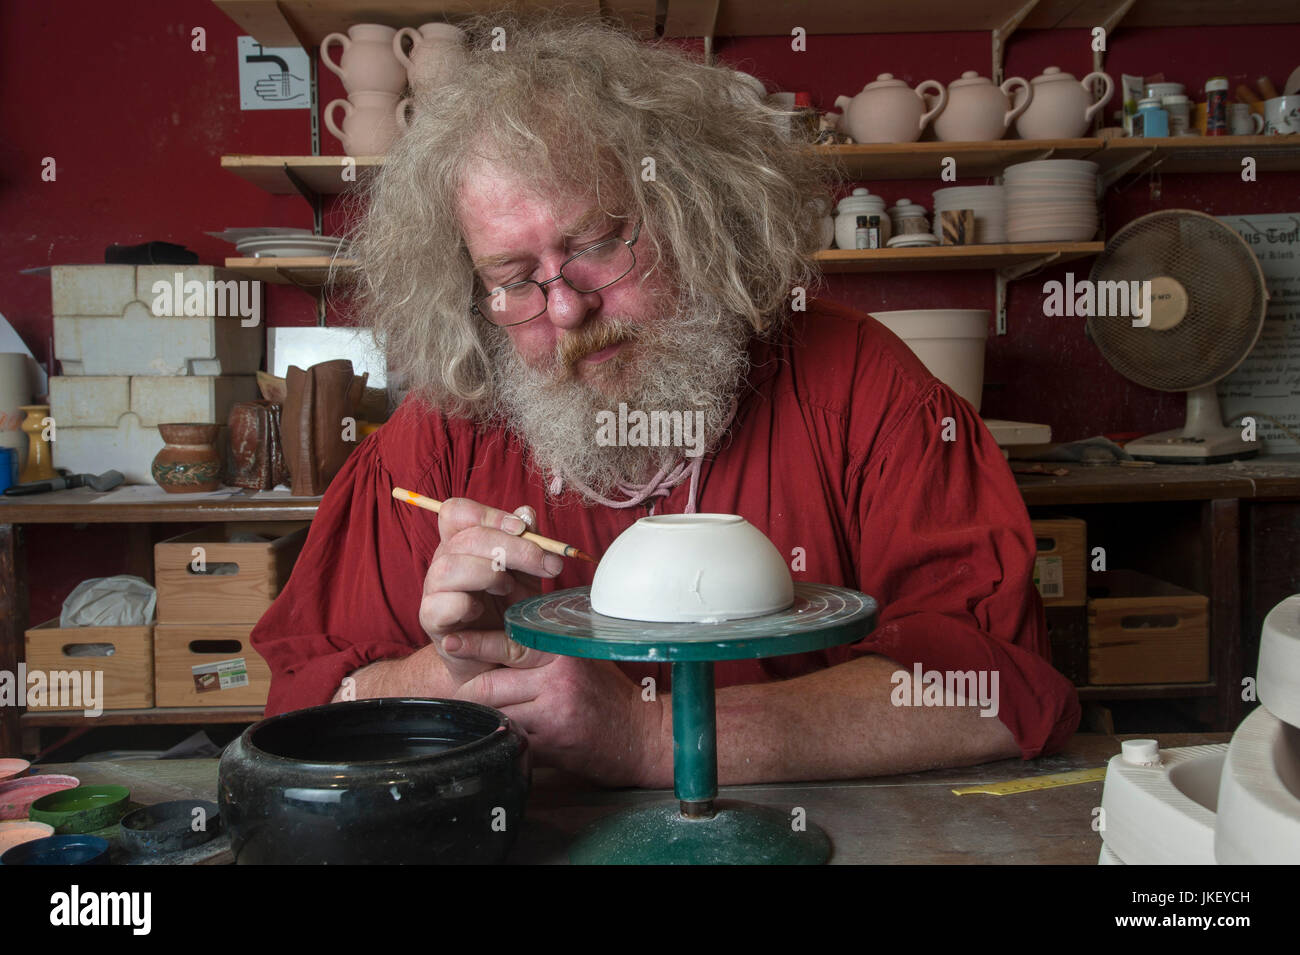 Rene Klohte at work in his Pottery in Halle-Salle, Germany. - Stock Image